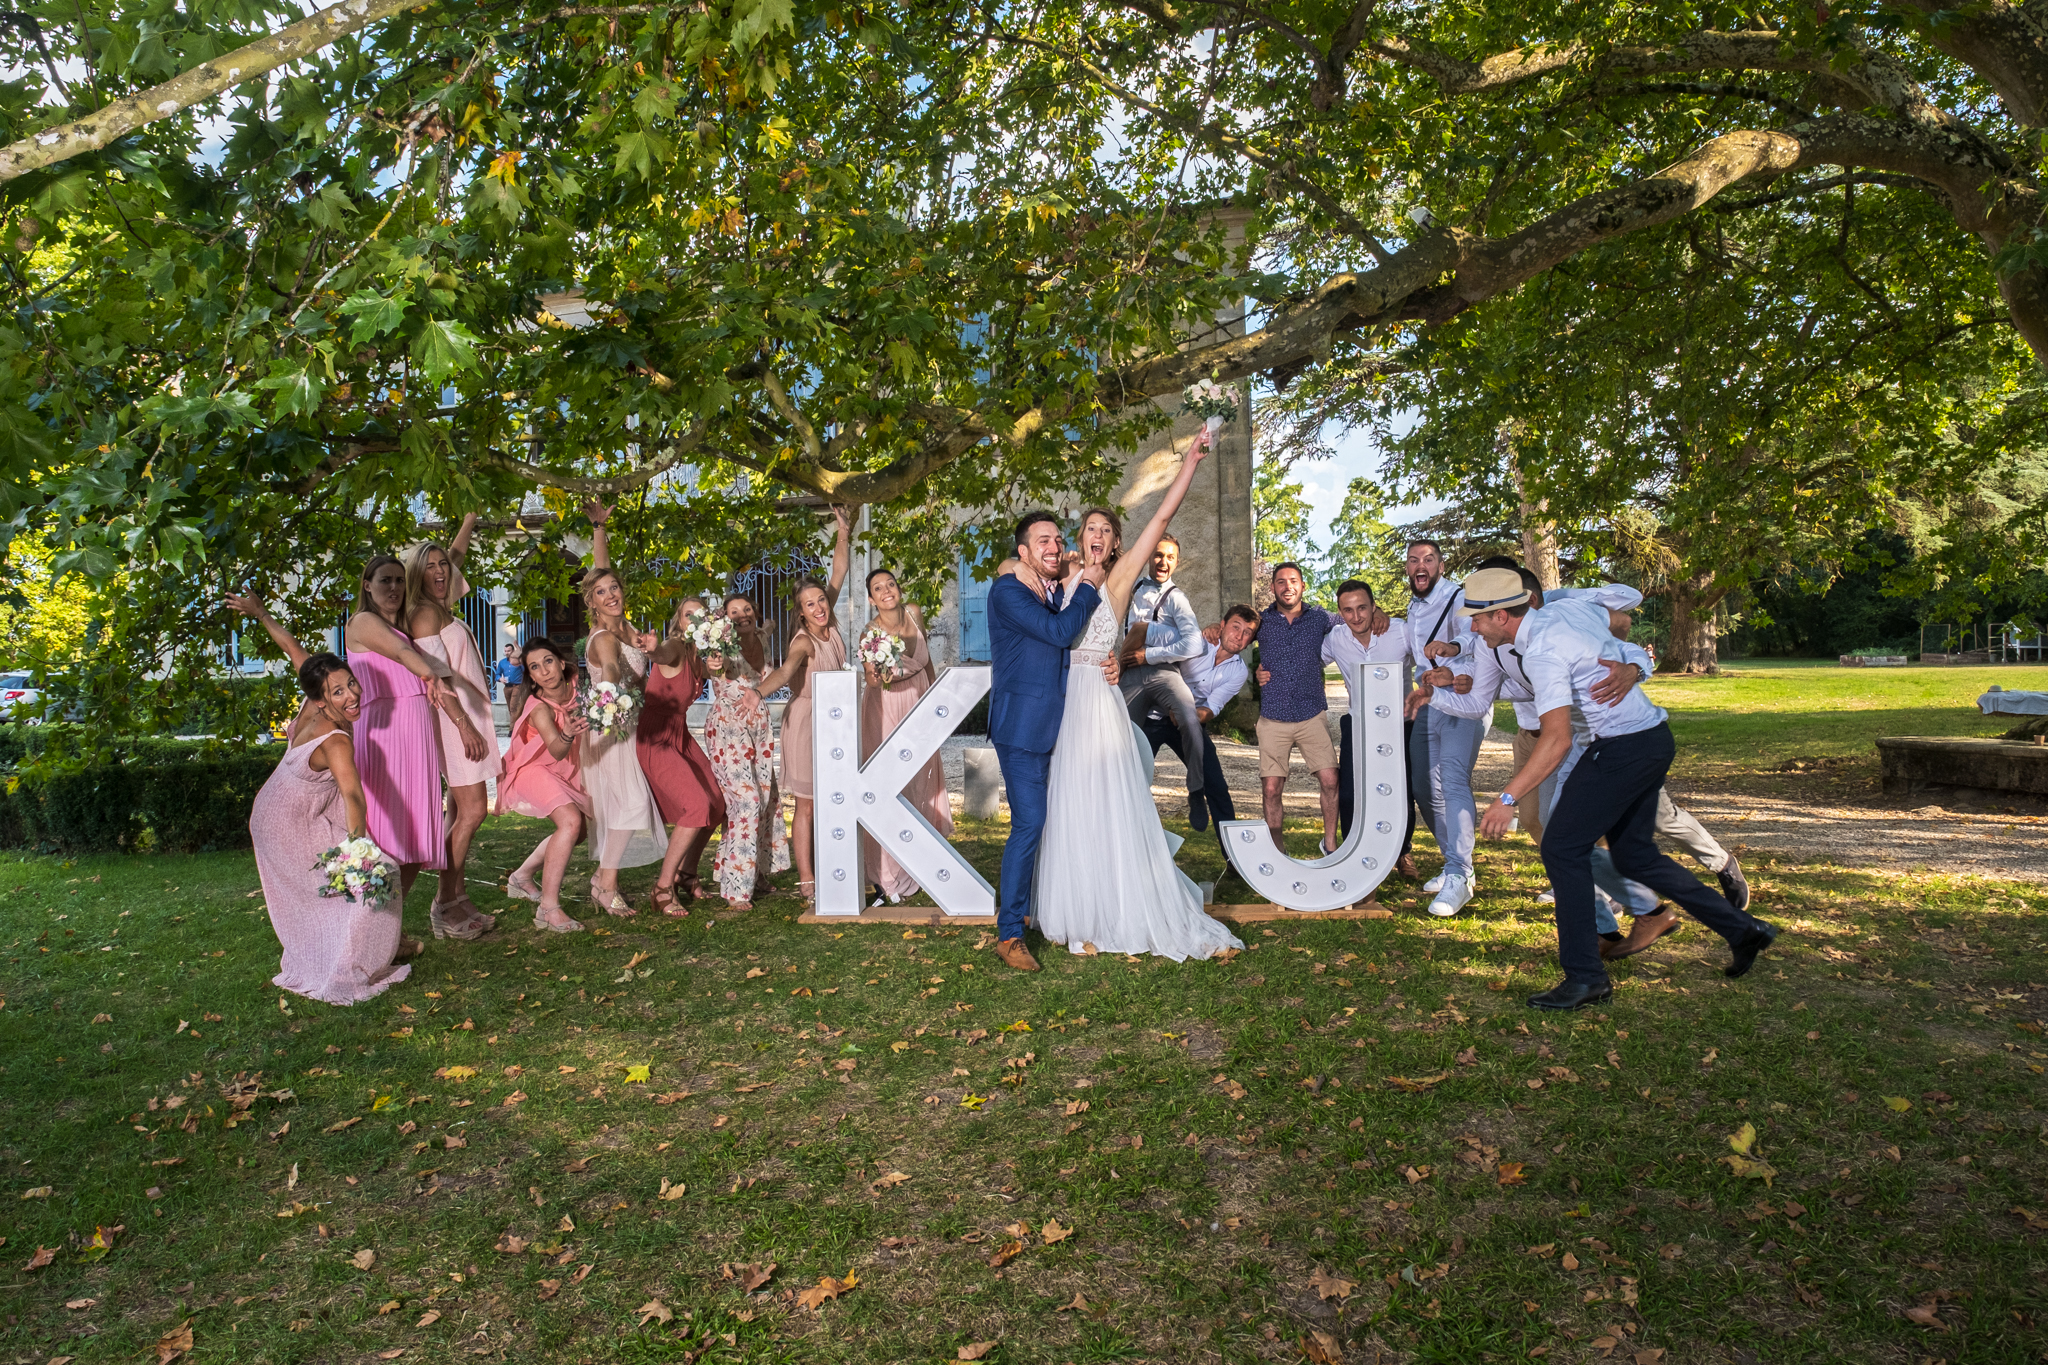 Vin d'honneur Mariage Jennyfer & Kevin 31 aout 2019 Chateau de la Rode. Photographe Julien Bergeaud The Beautiful Day photo de groupe